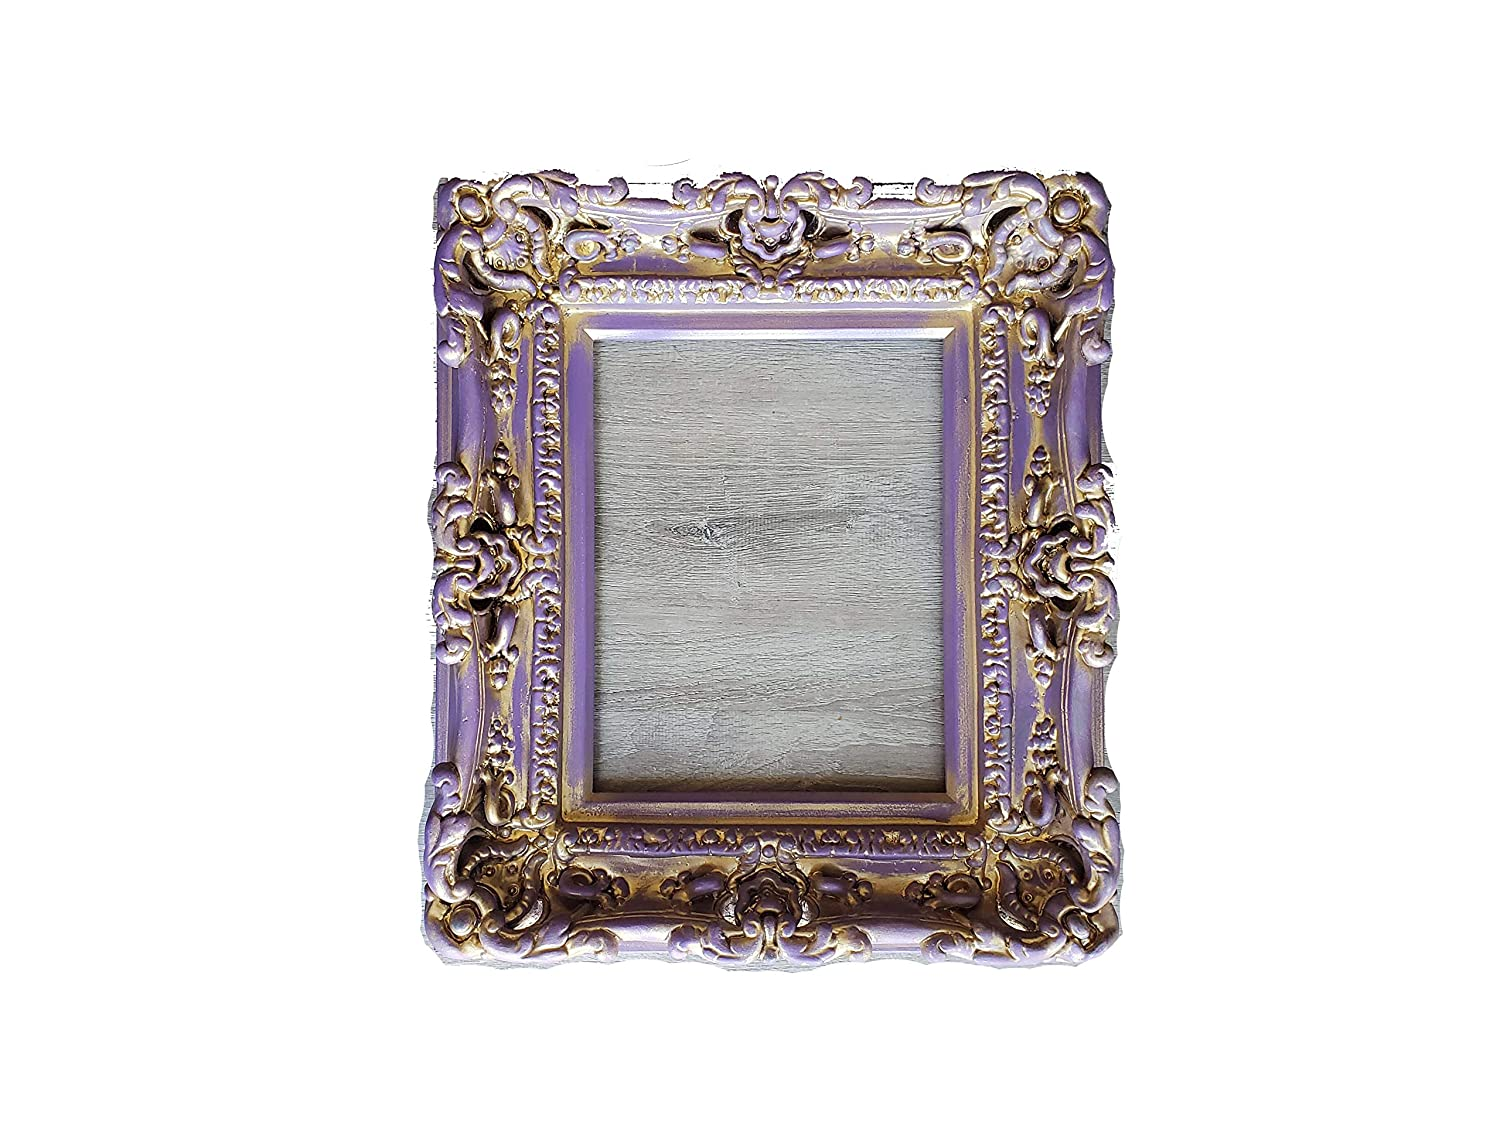 At the price 12x16 Shabby Chic 2021 new Frame Decorative Picture Ornate Wall Baroque